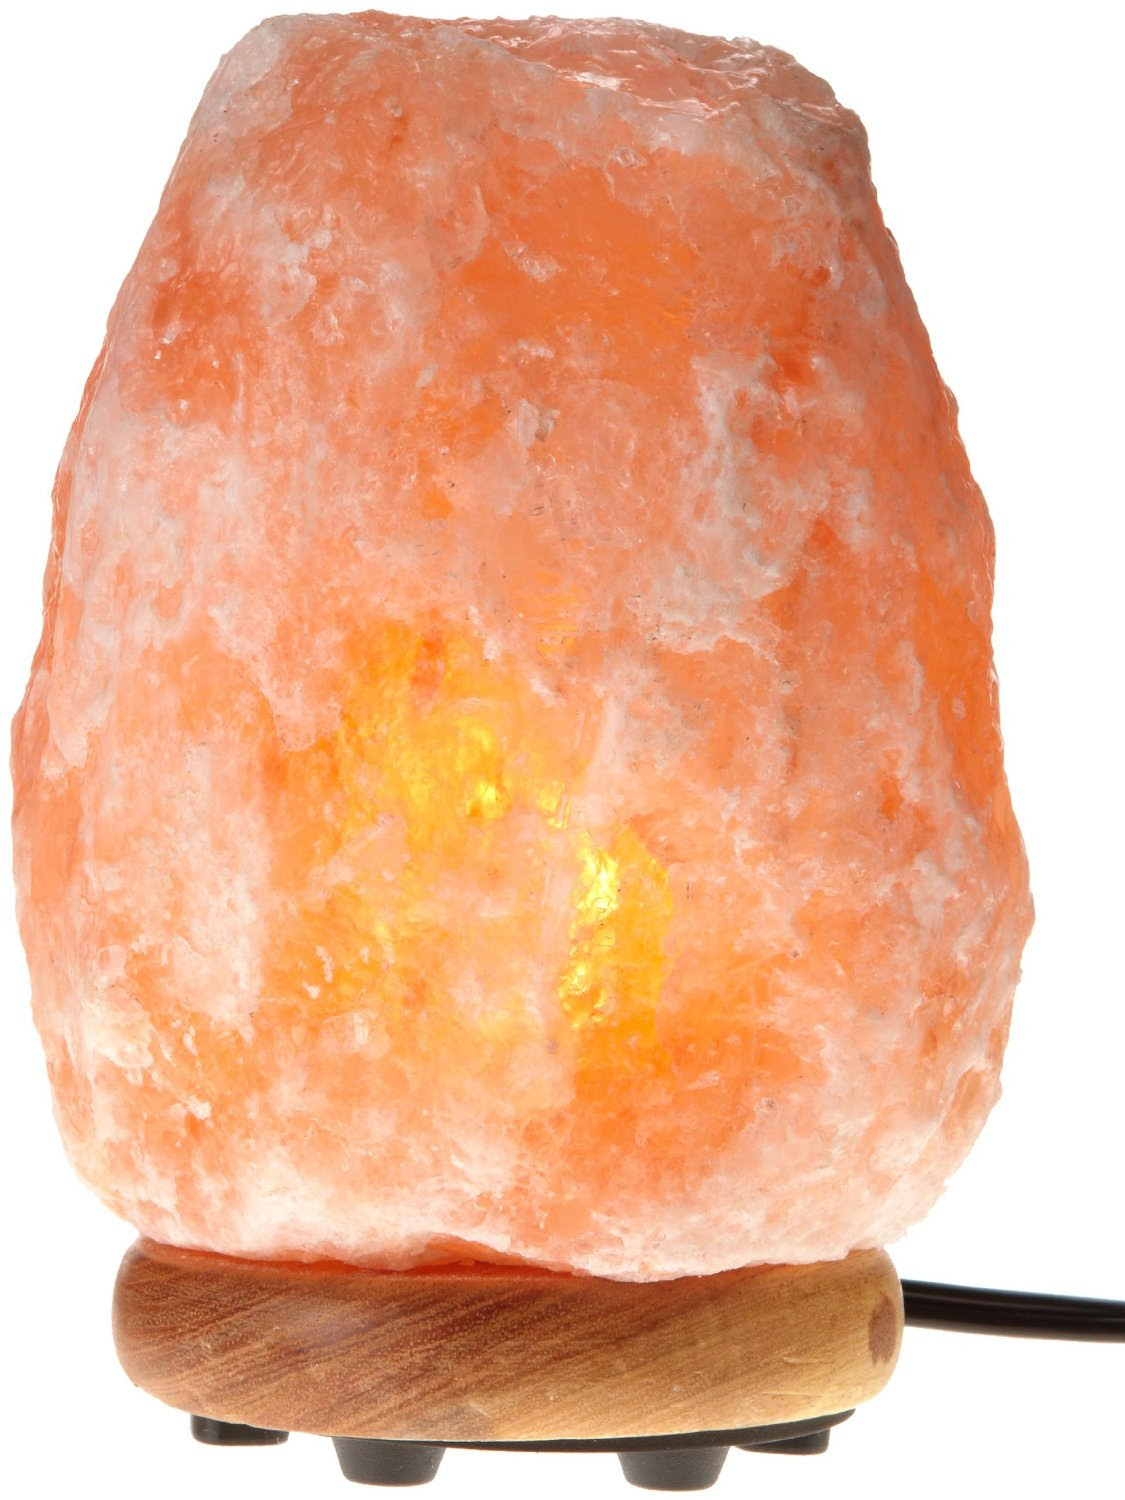 12 Reasons To Keep A Himalayan Salt Lamp In Every Room Of The House